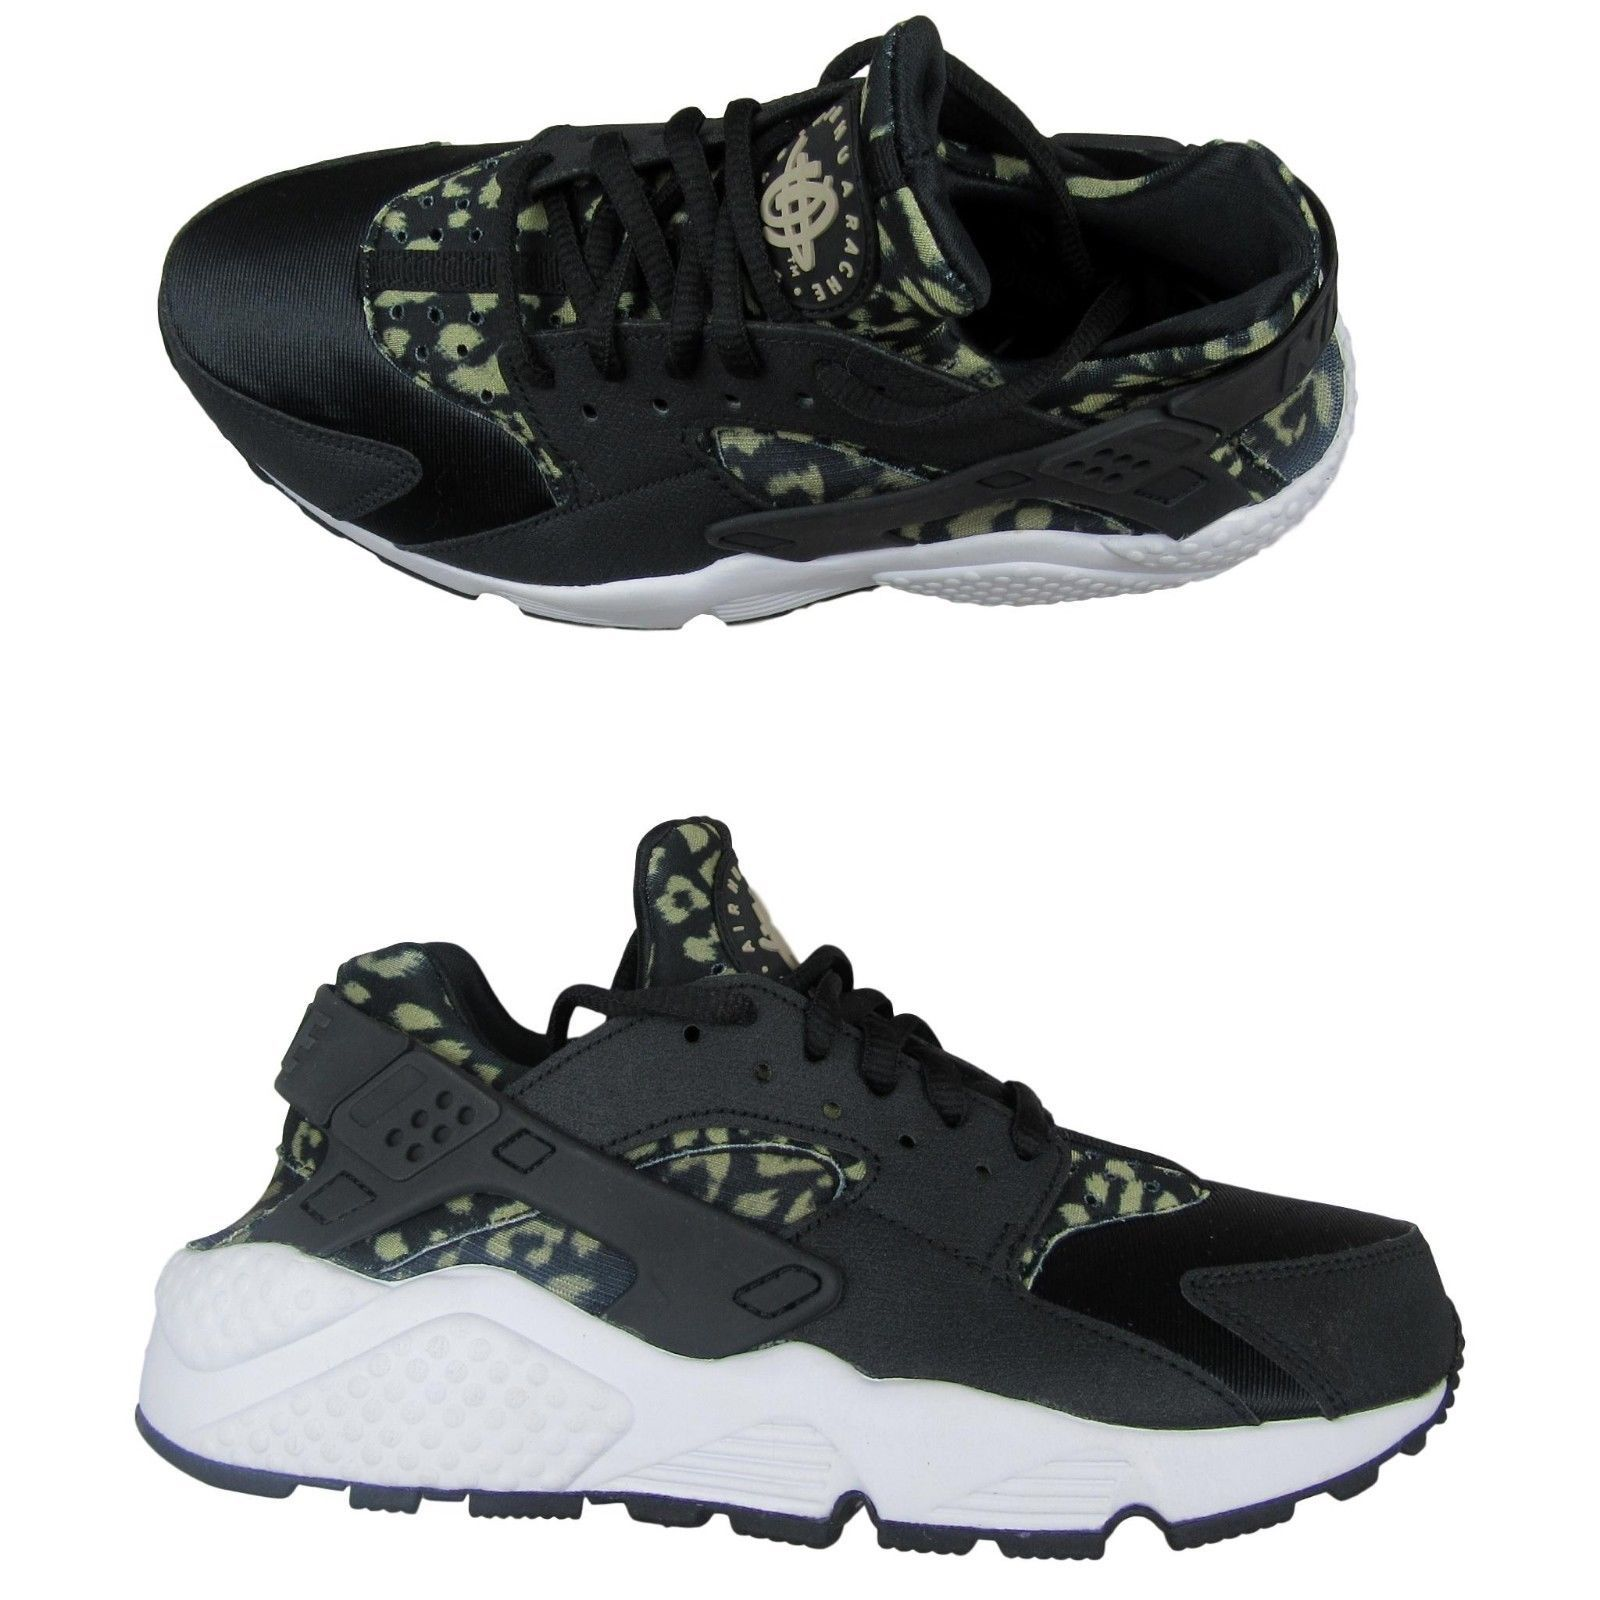 0297aa6a4bcc Nike Air Huarache Shoes Size 6.5 Womens and 17 similar items